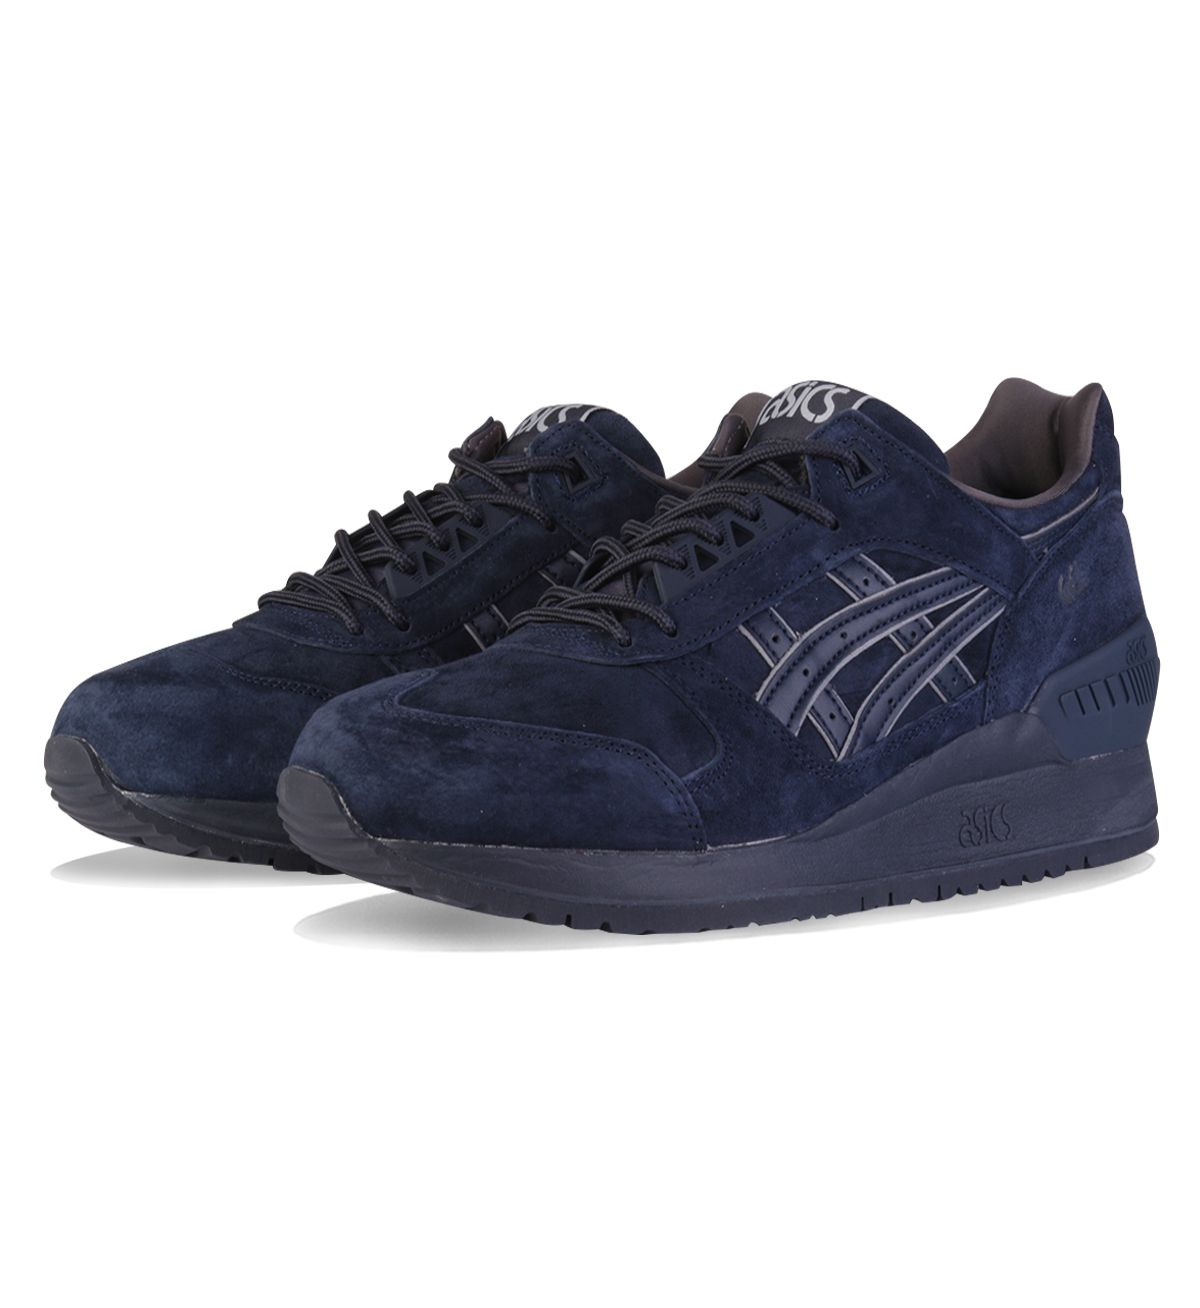 buy online b7e9f 9c93a ASICS Gel Respector Suede Pack Ink   Indian Ink - ASICS